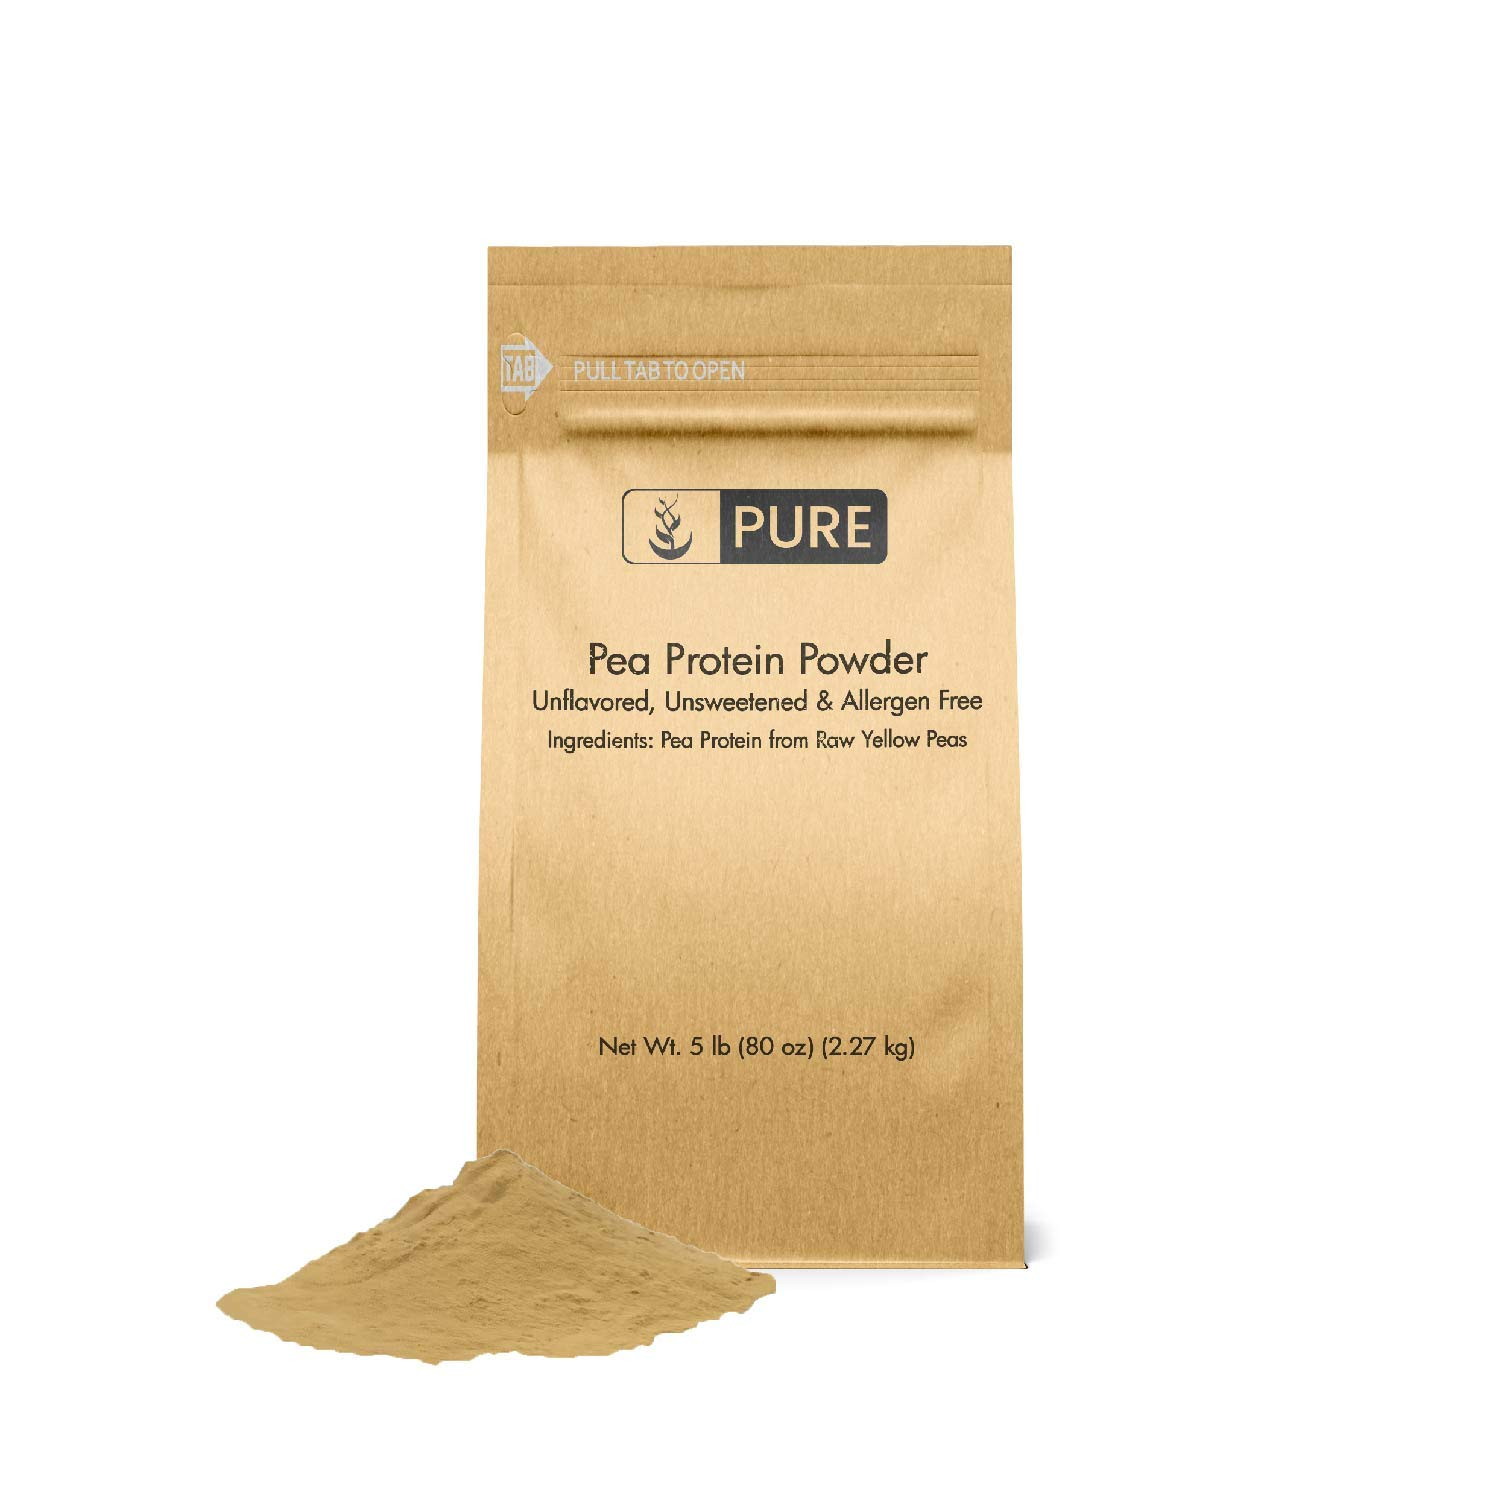 Pea Protein Powder (5 lbs) by Pure Organic Ingredients, Eco-Friendly Packaging, High Quality, All-Natural, Allergen-Free